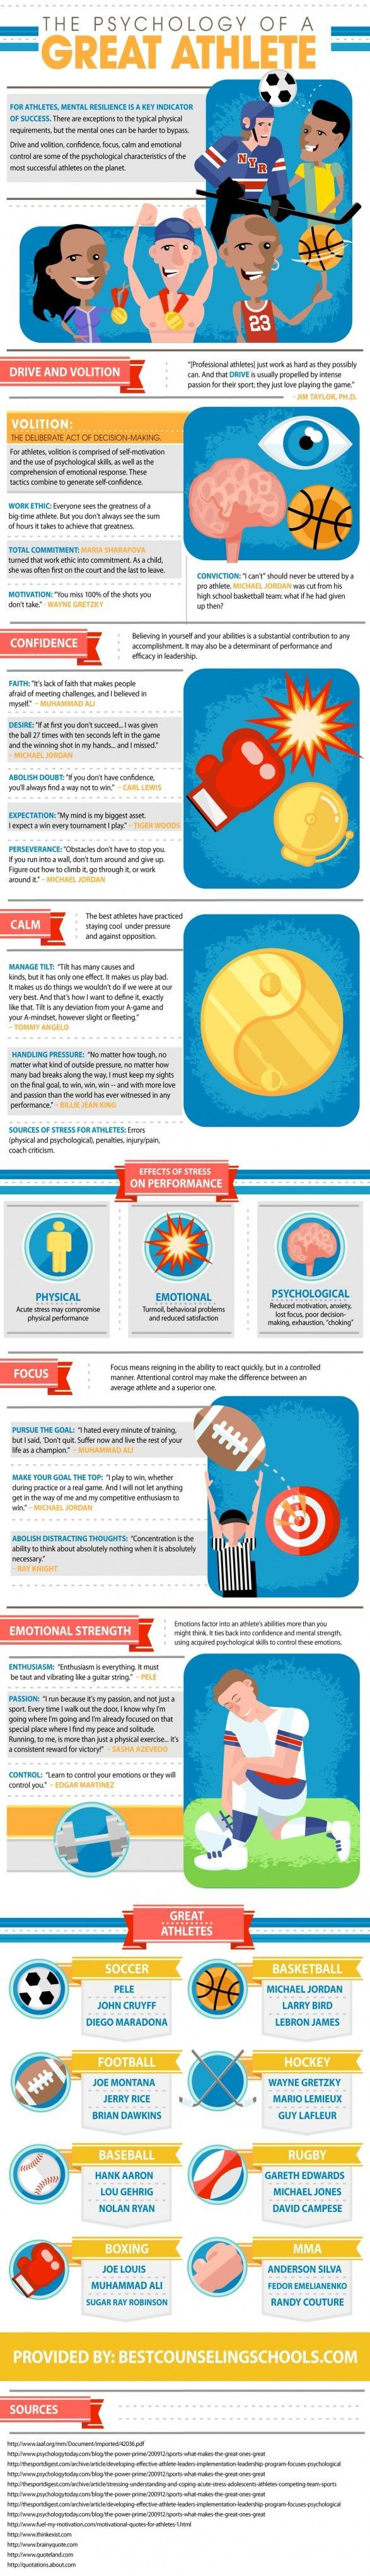 The Sports Psychology Behind Great Athletes, Both Past And Present